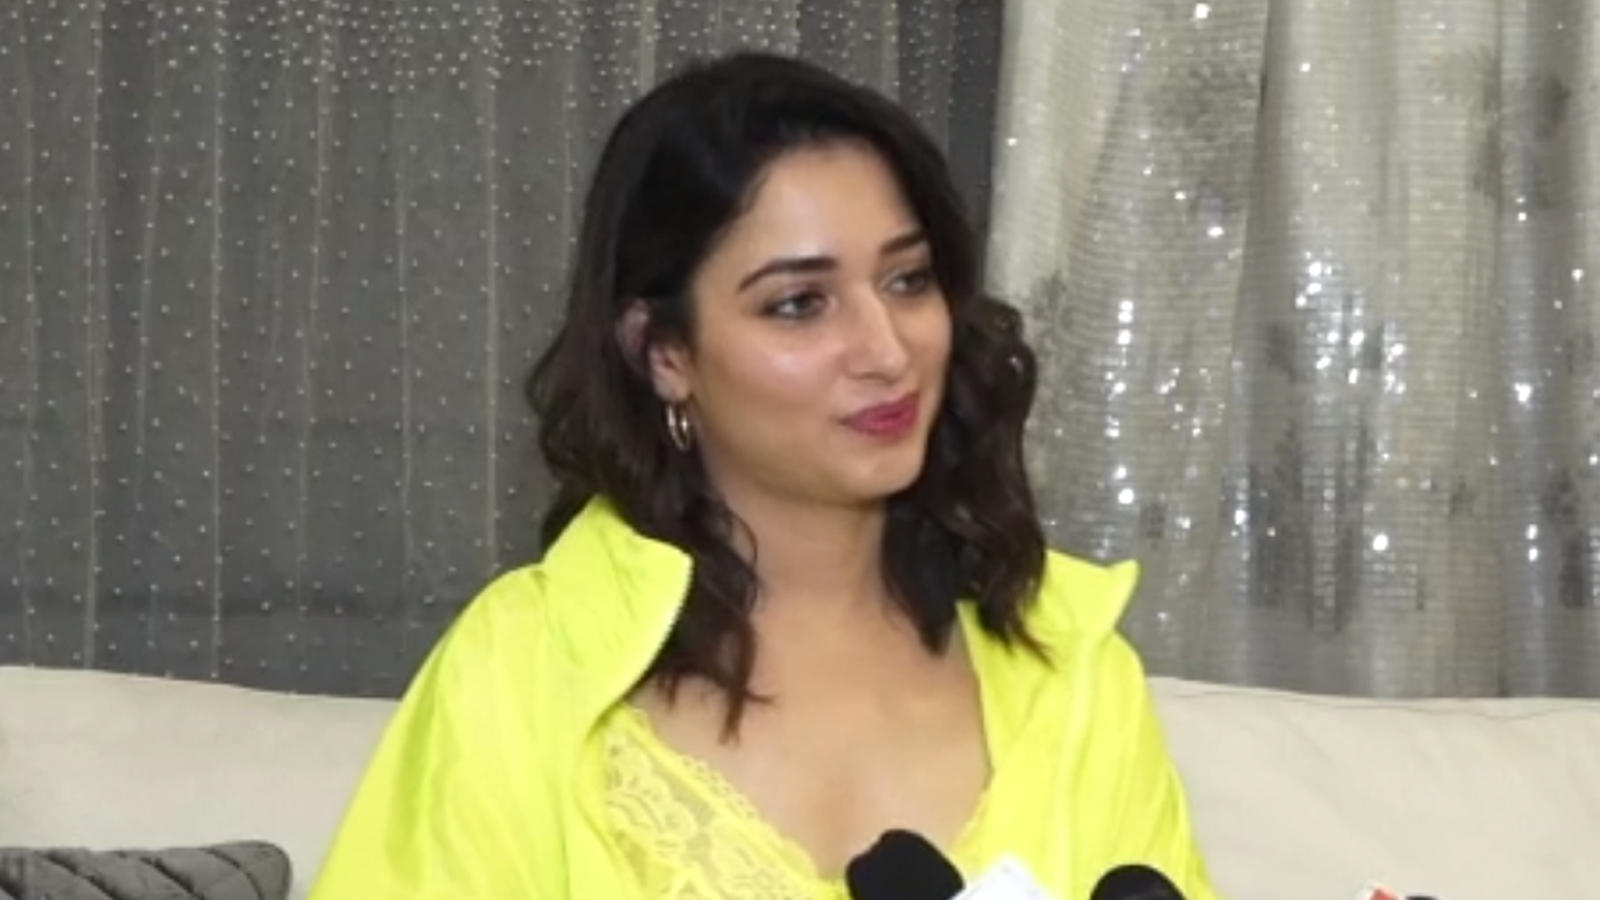 for-films-learning-new-skills-is-important-tamannaah-bhatia